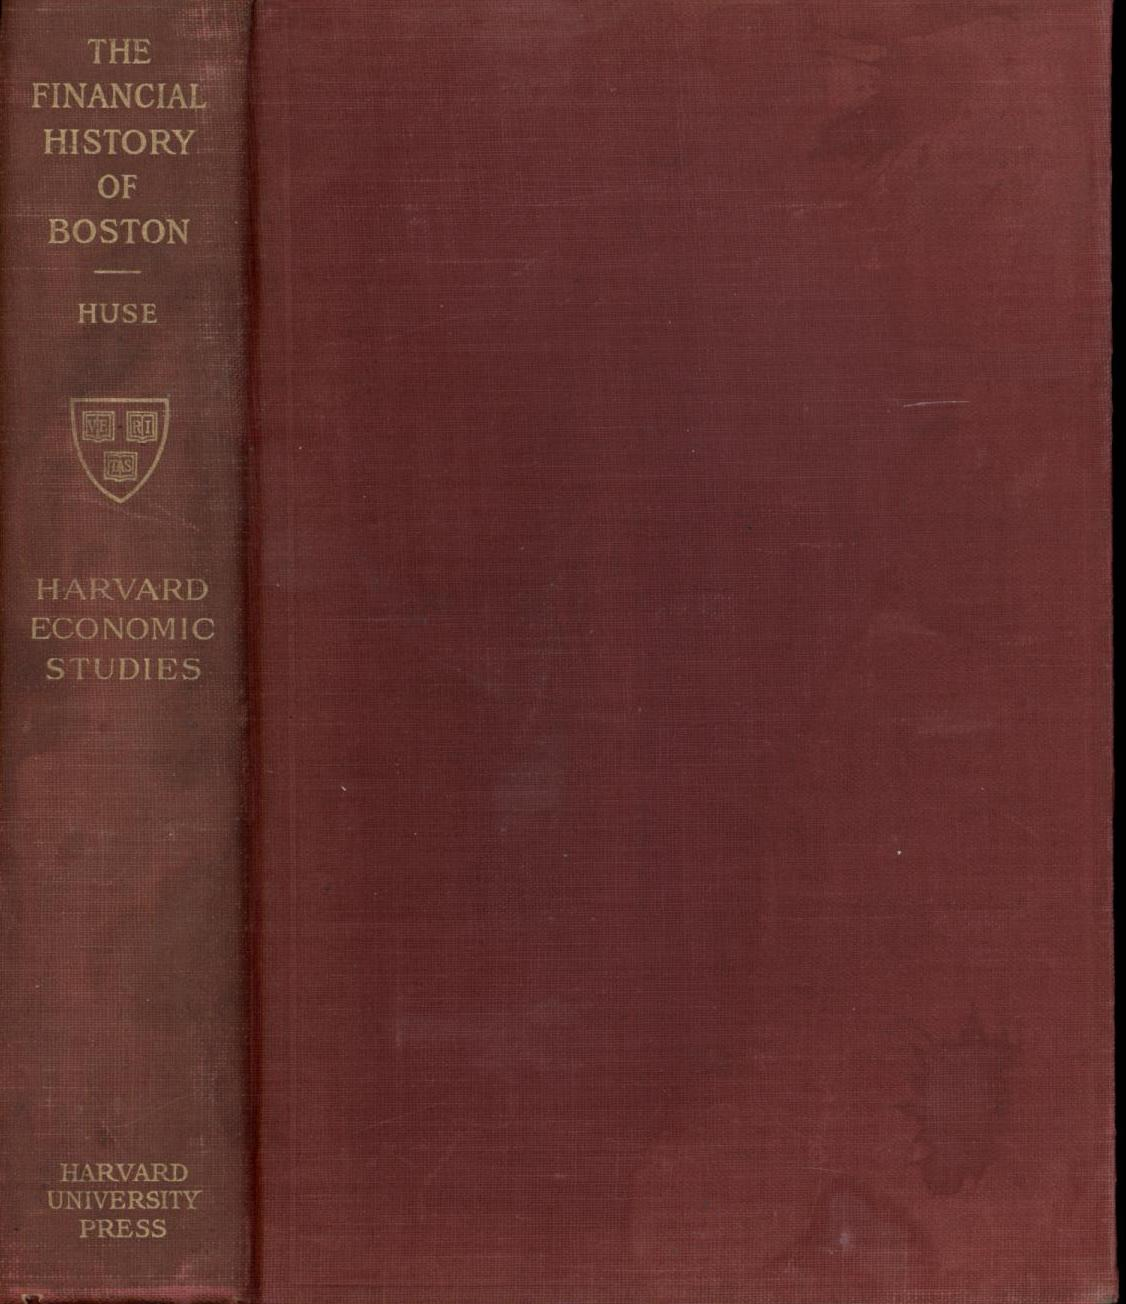 Image for The Financial History of Boston from May 1, 1822 to January 31, 1909 (First Edition)